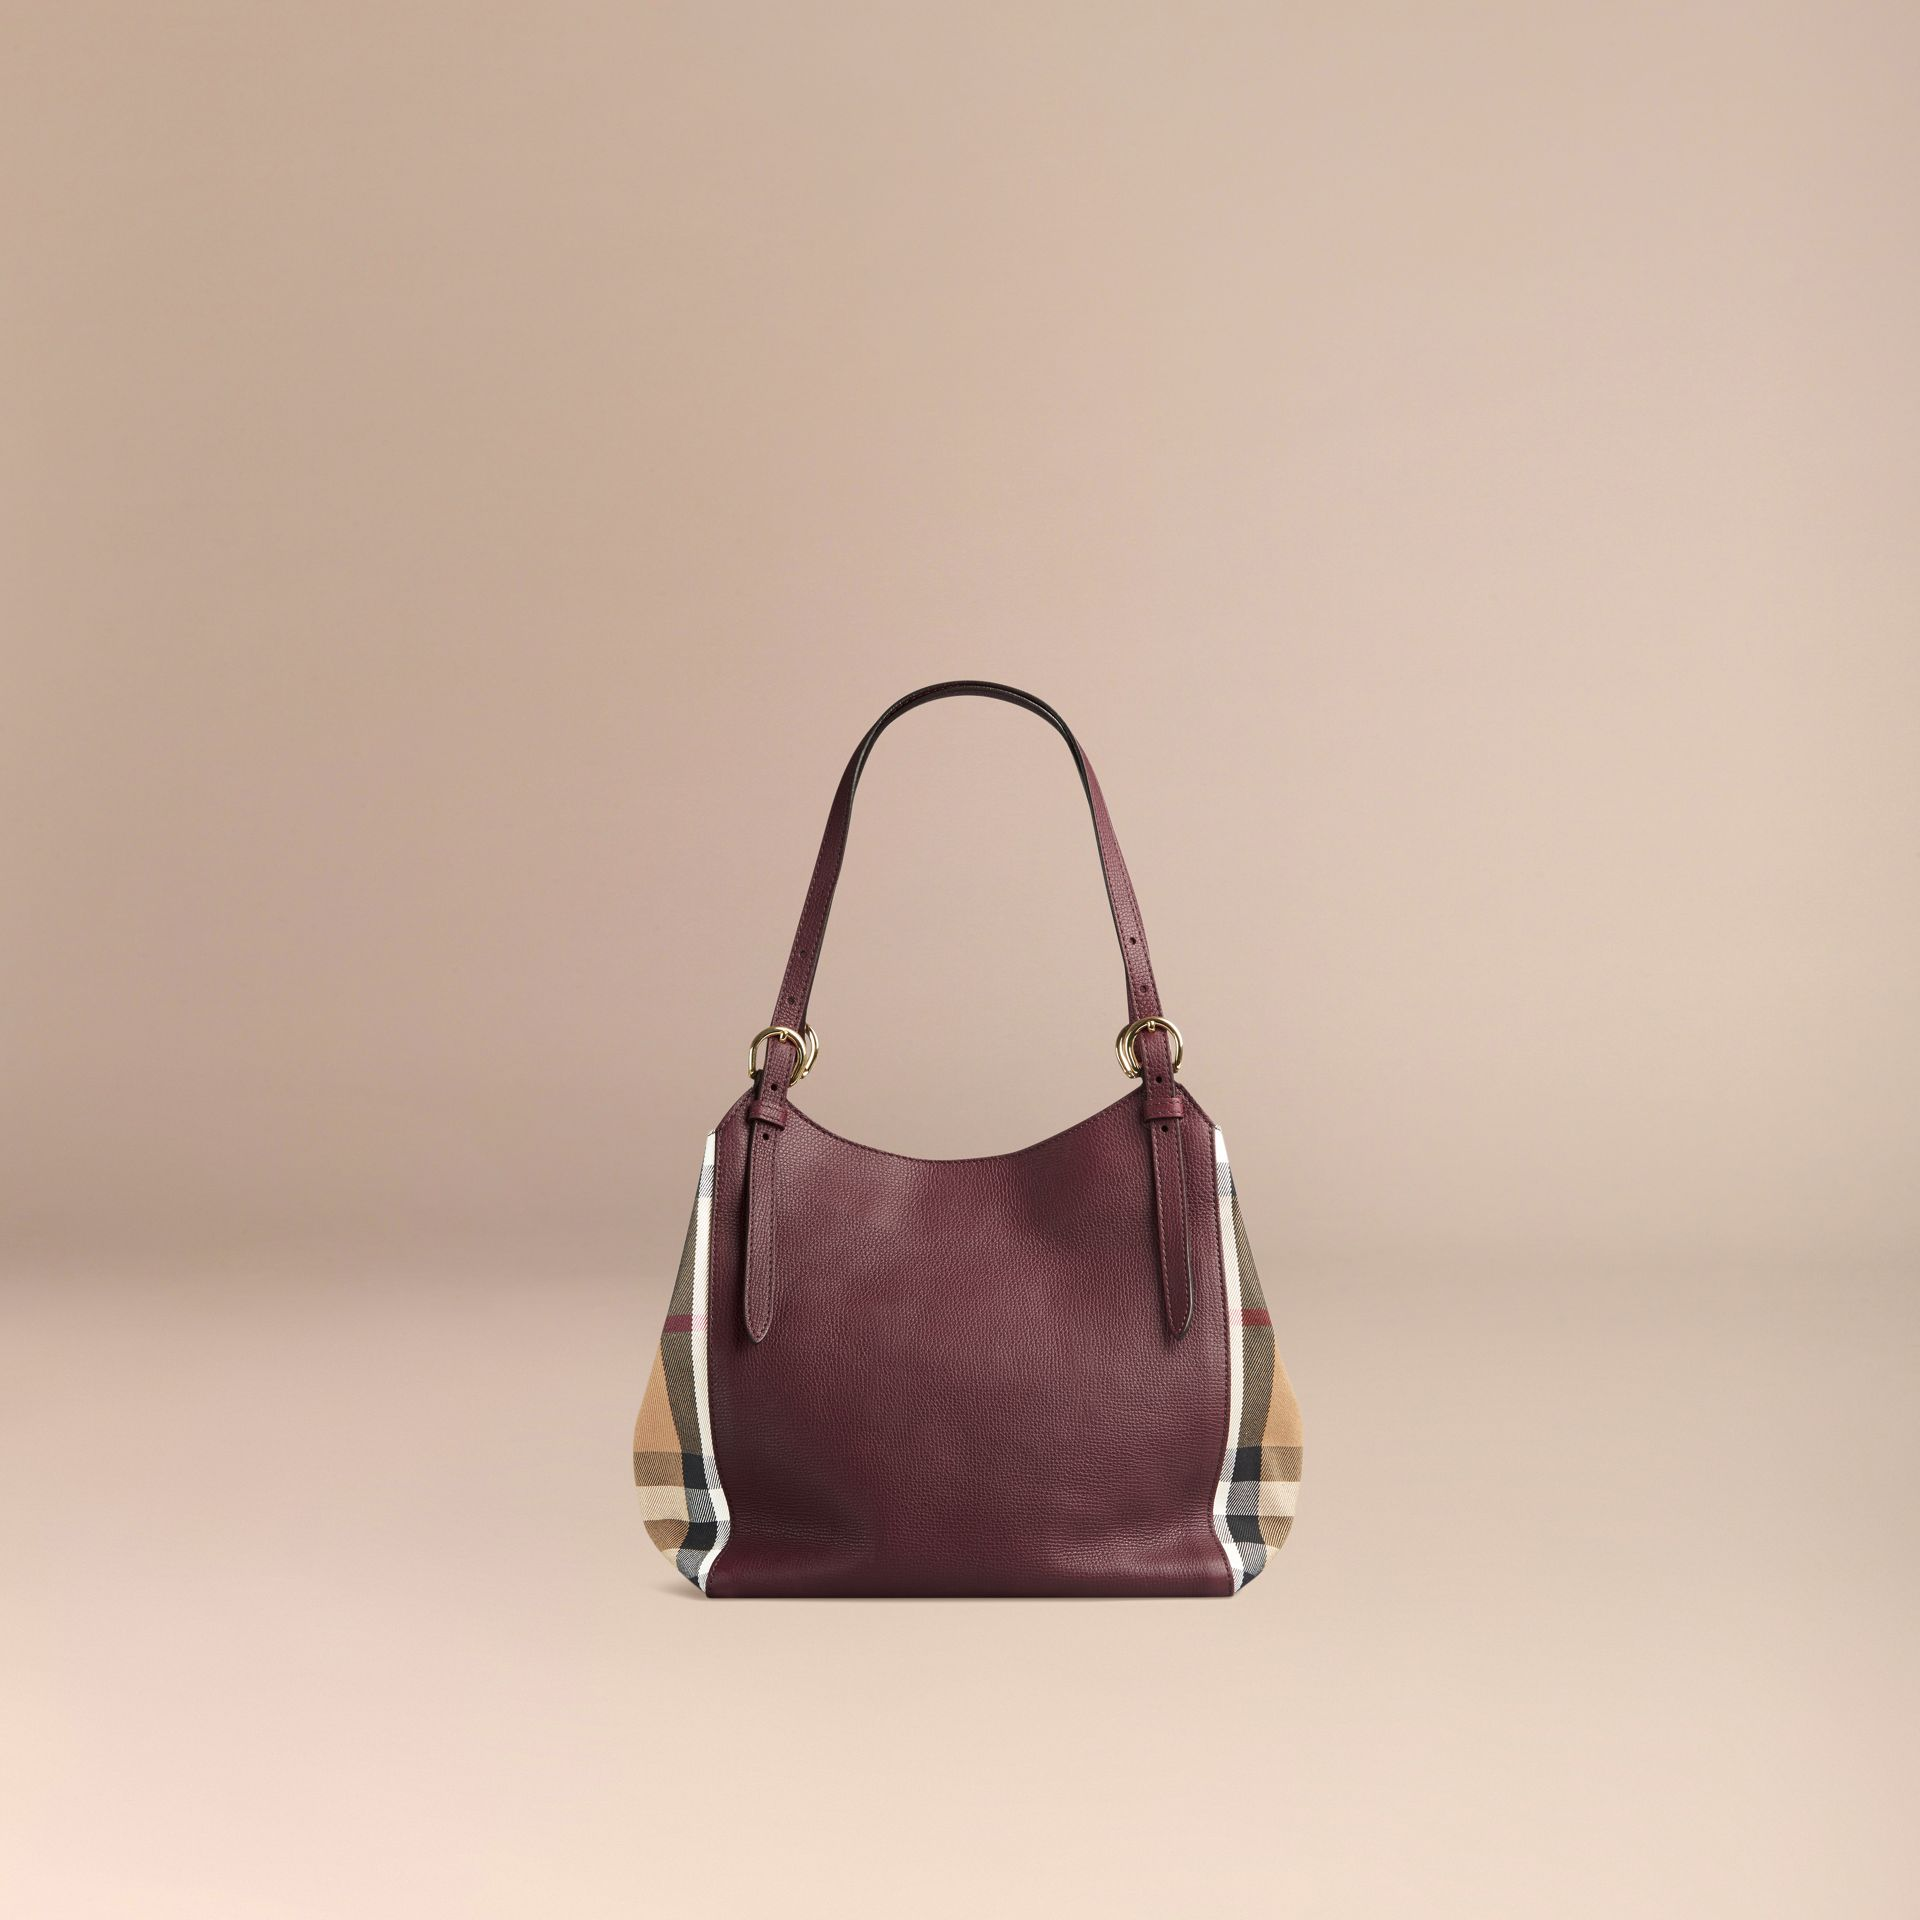 Rouge acajou Petit sac The Canter en cuir avec motif House check Rouge Acajou - photo de la galerie 4